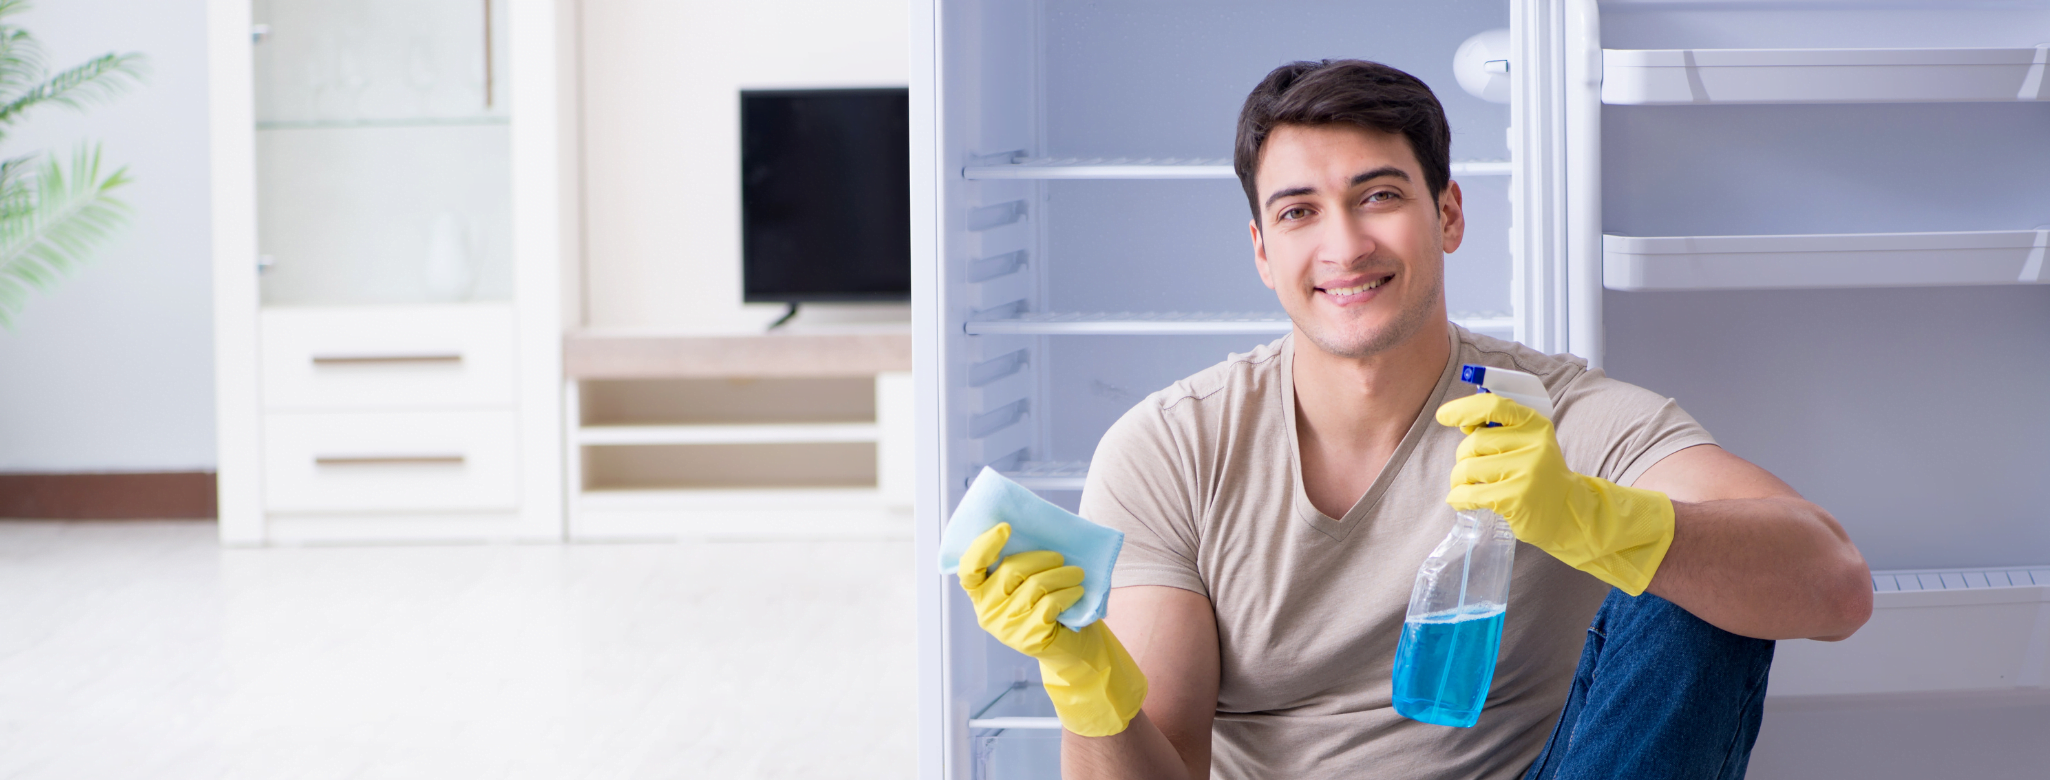 Seven Things to Clean Before They Go Into Long-Term Storage